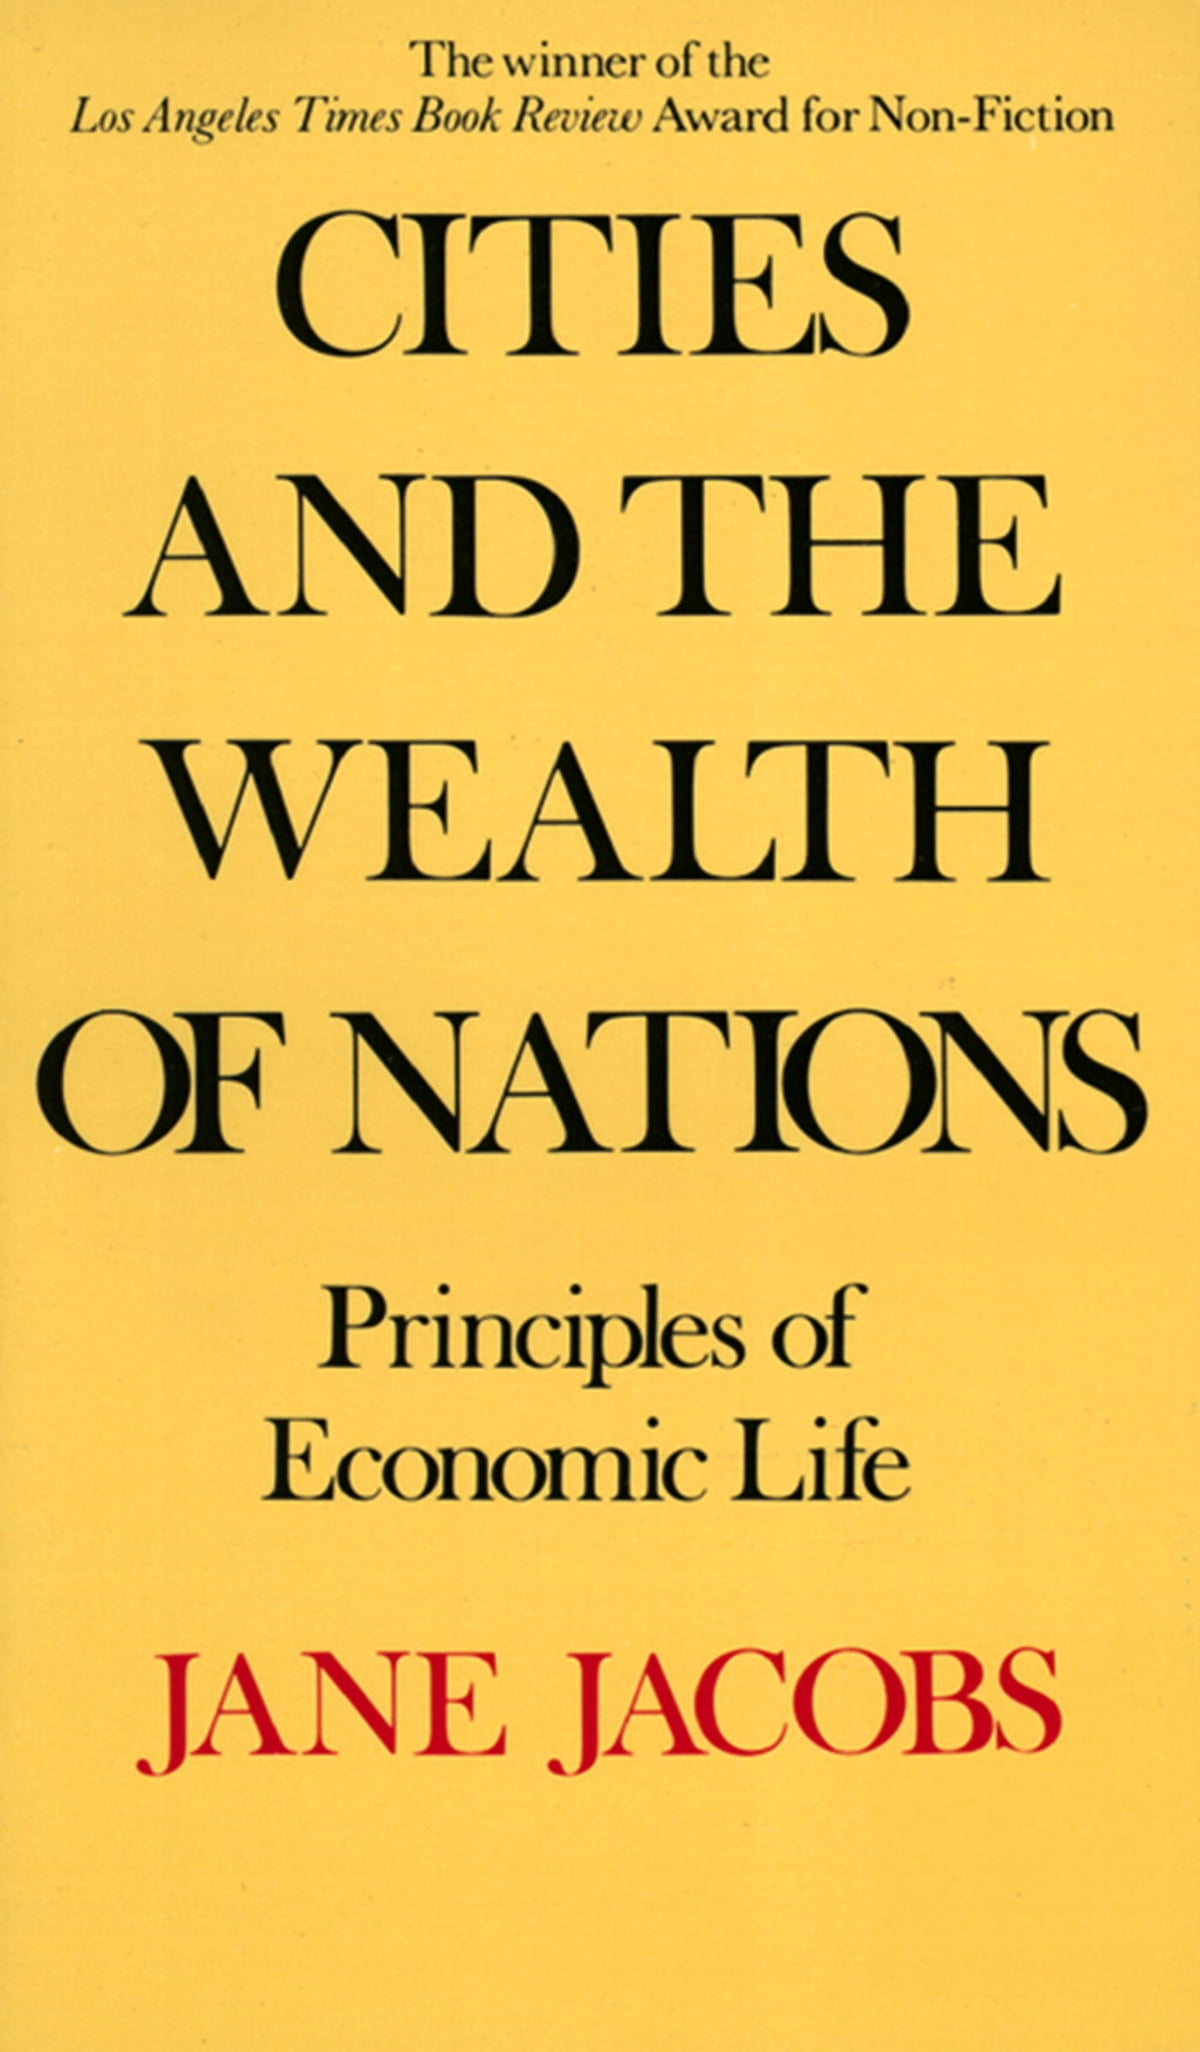 jane jacobs cities and the wealth of nations pdf